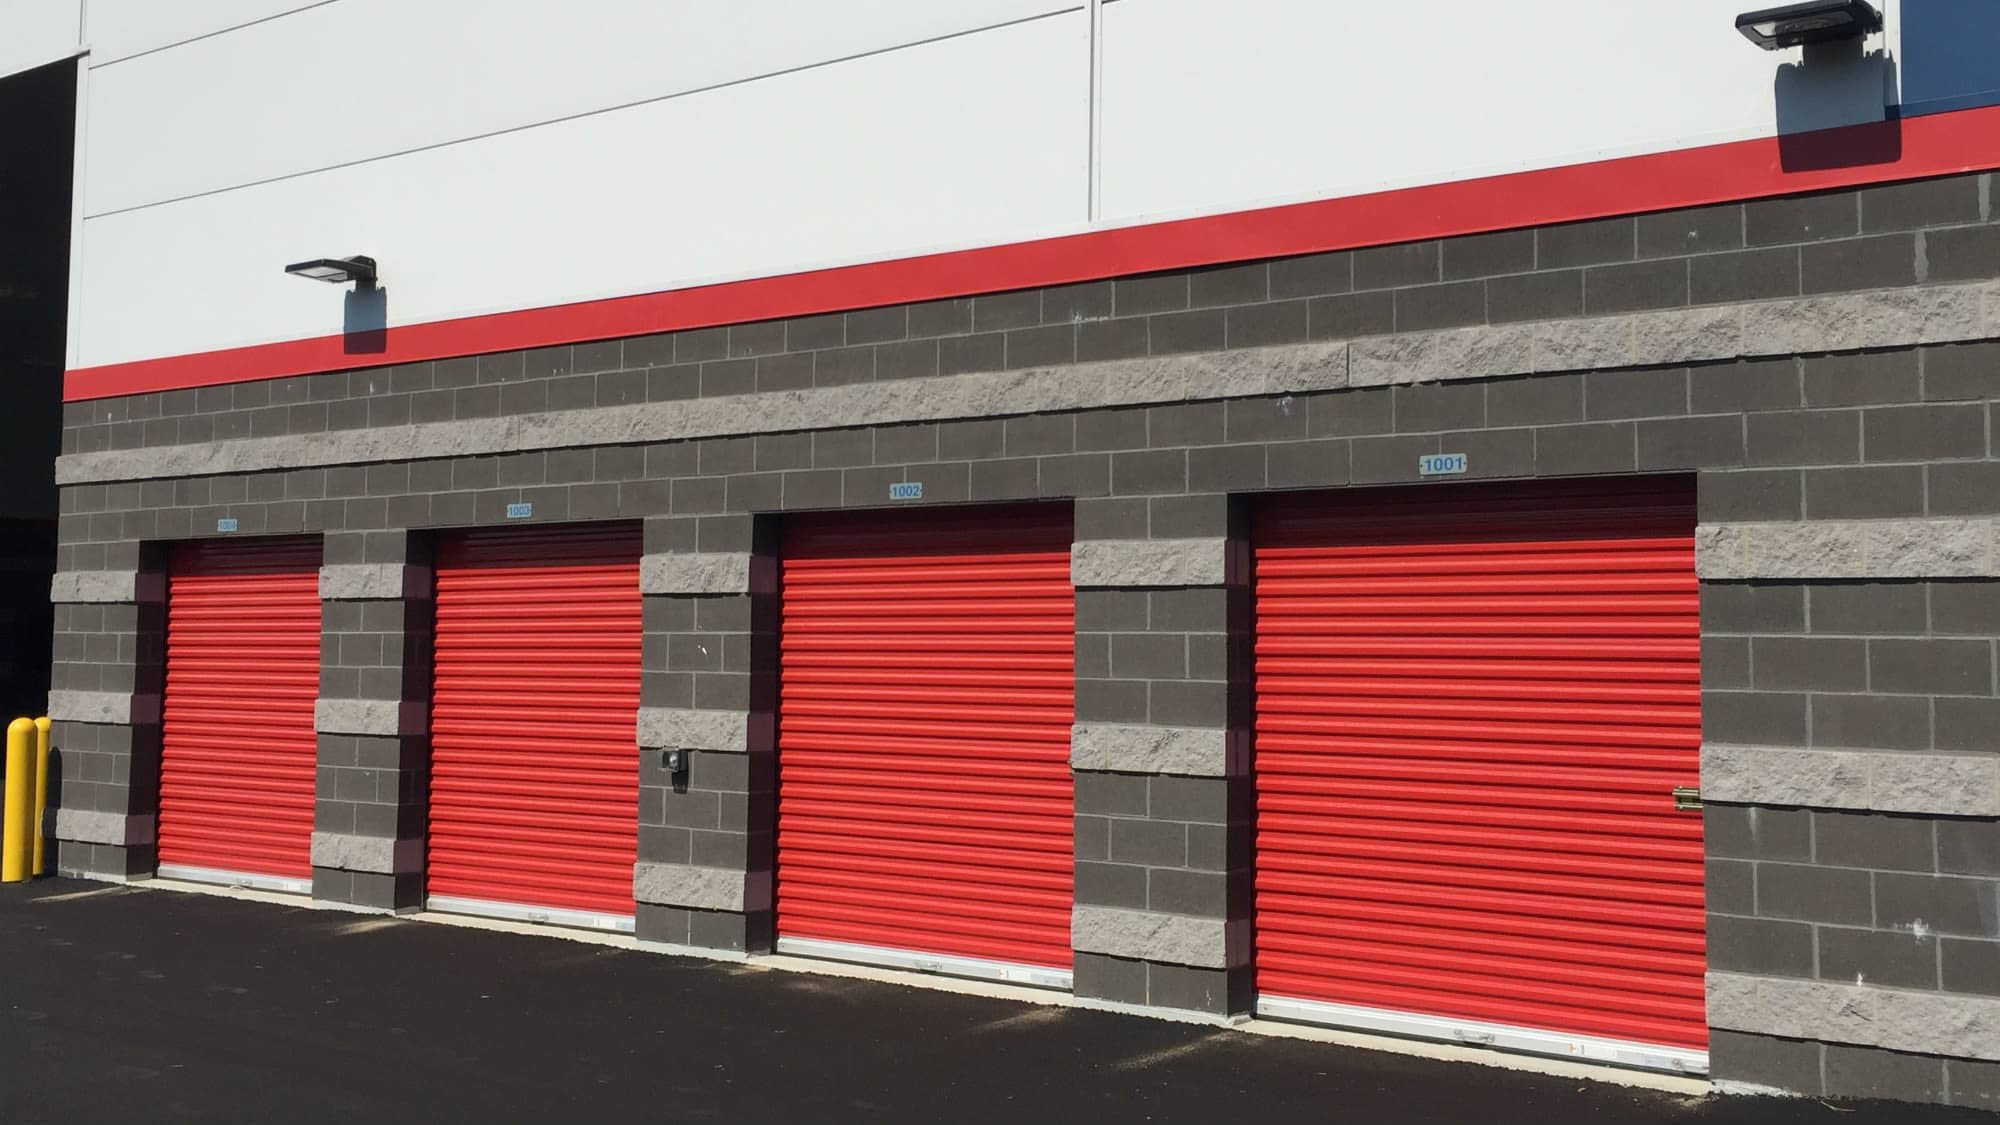 Drive up units at Self Storage Plus in Cockeysville, Maryland